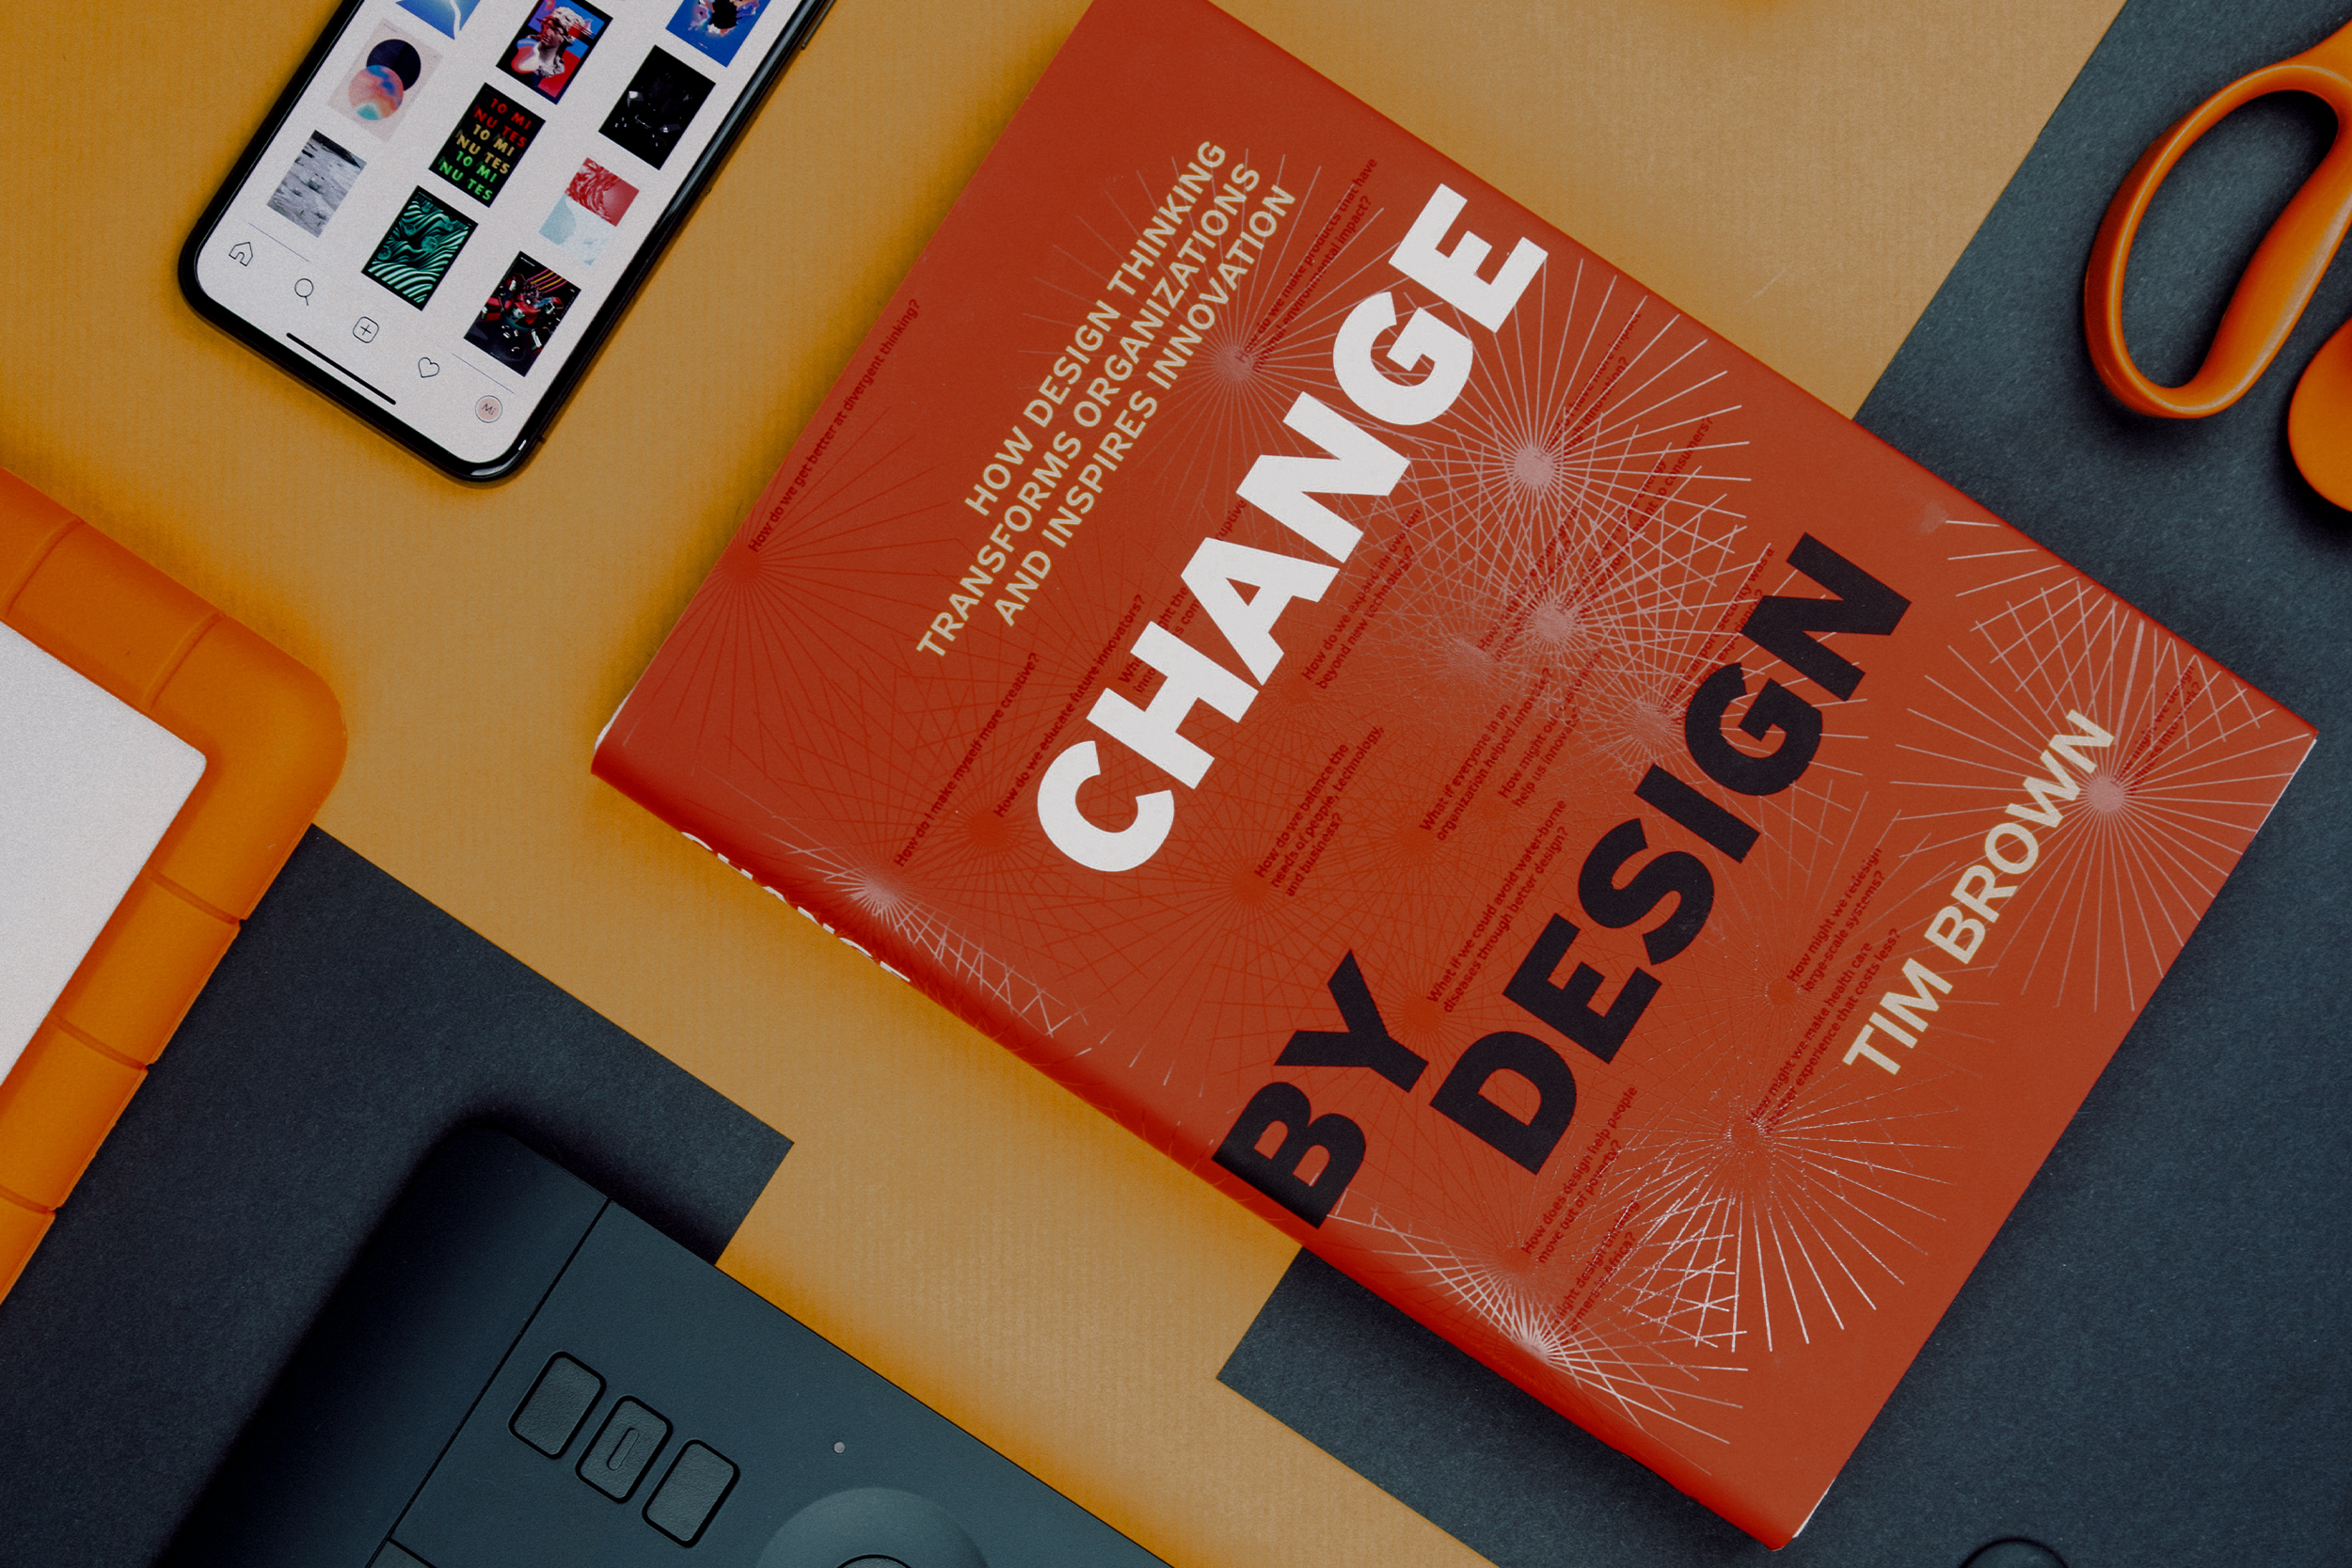 From Design to <br/> Design thinking